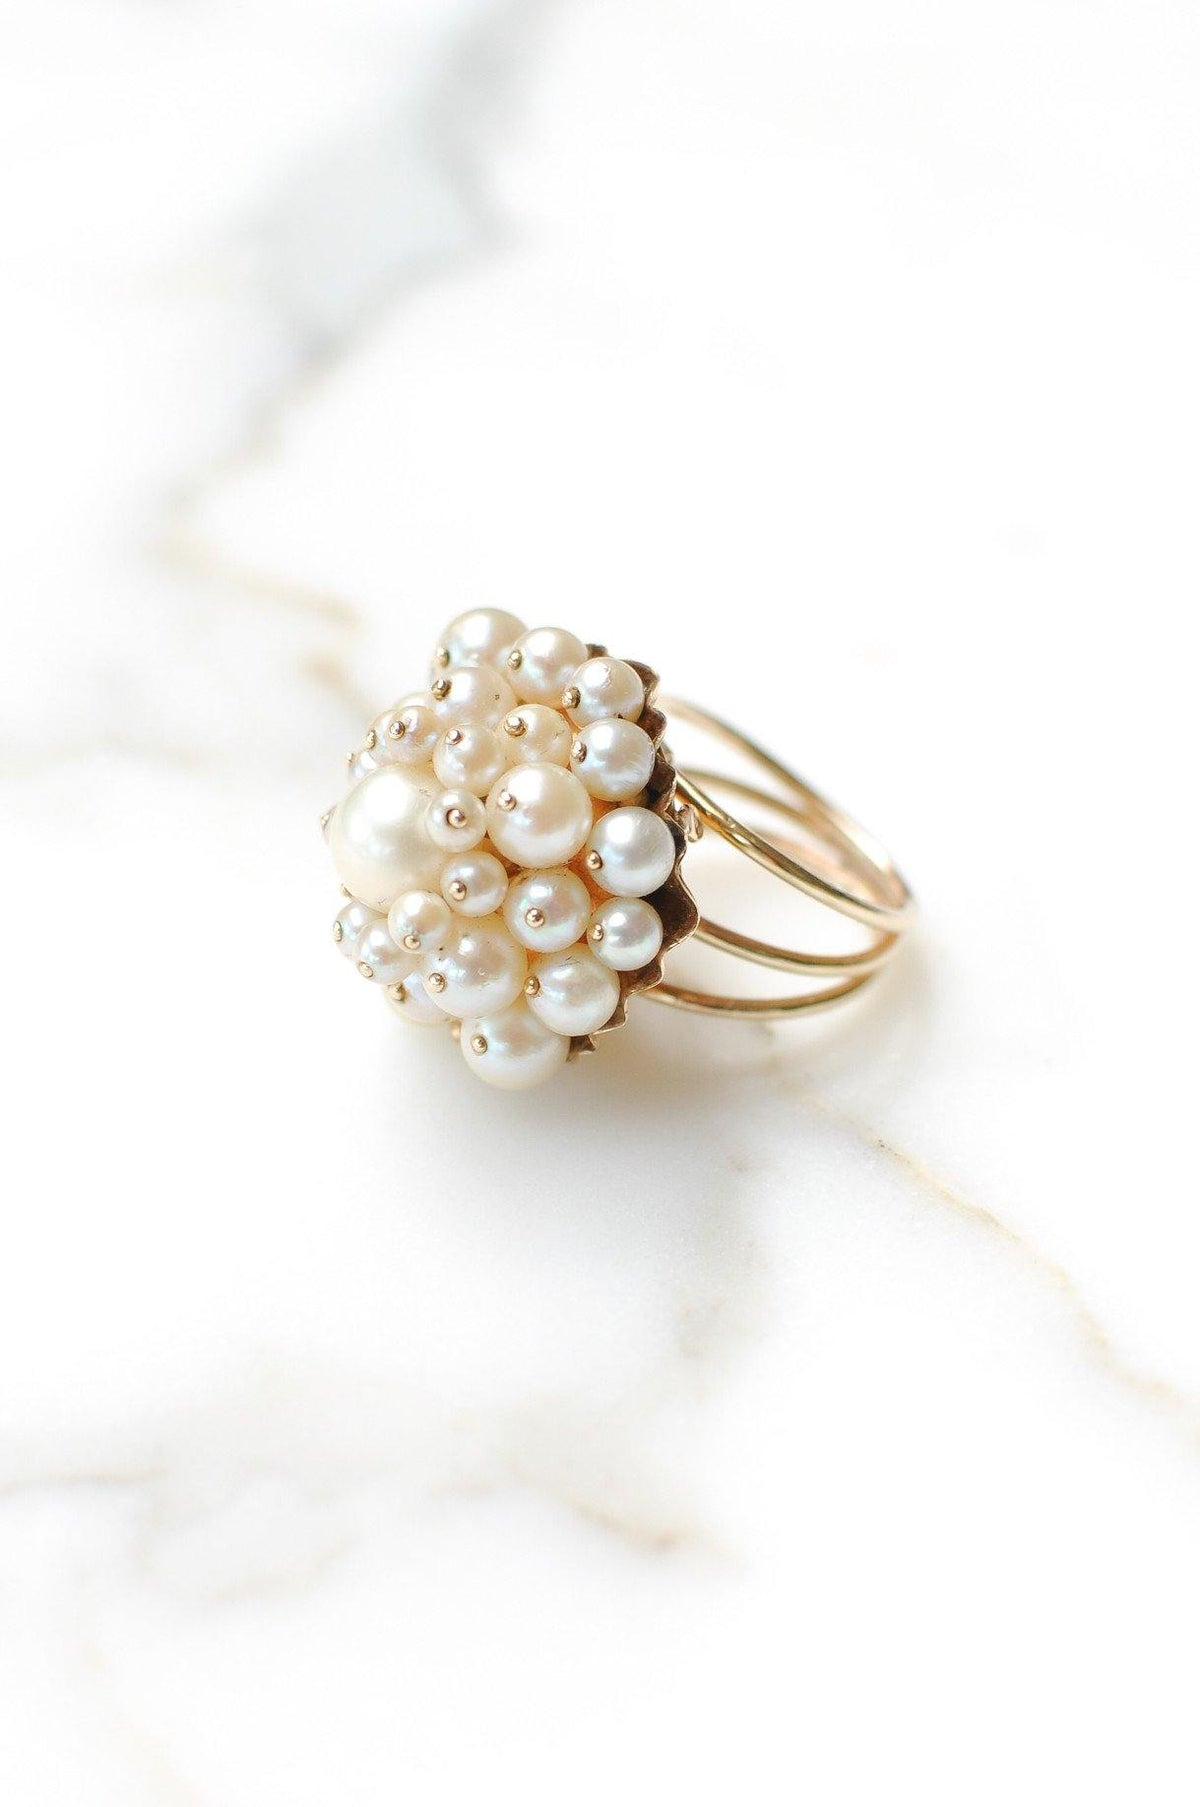 __Gold West Vintage__Clustered Pearl Cocktail Ring